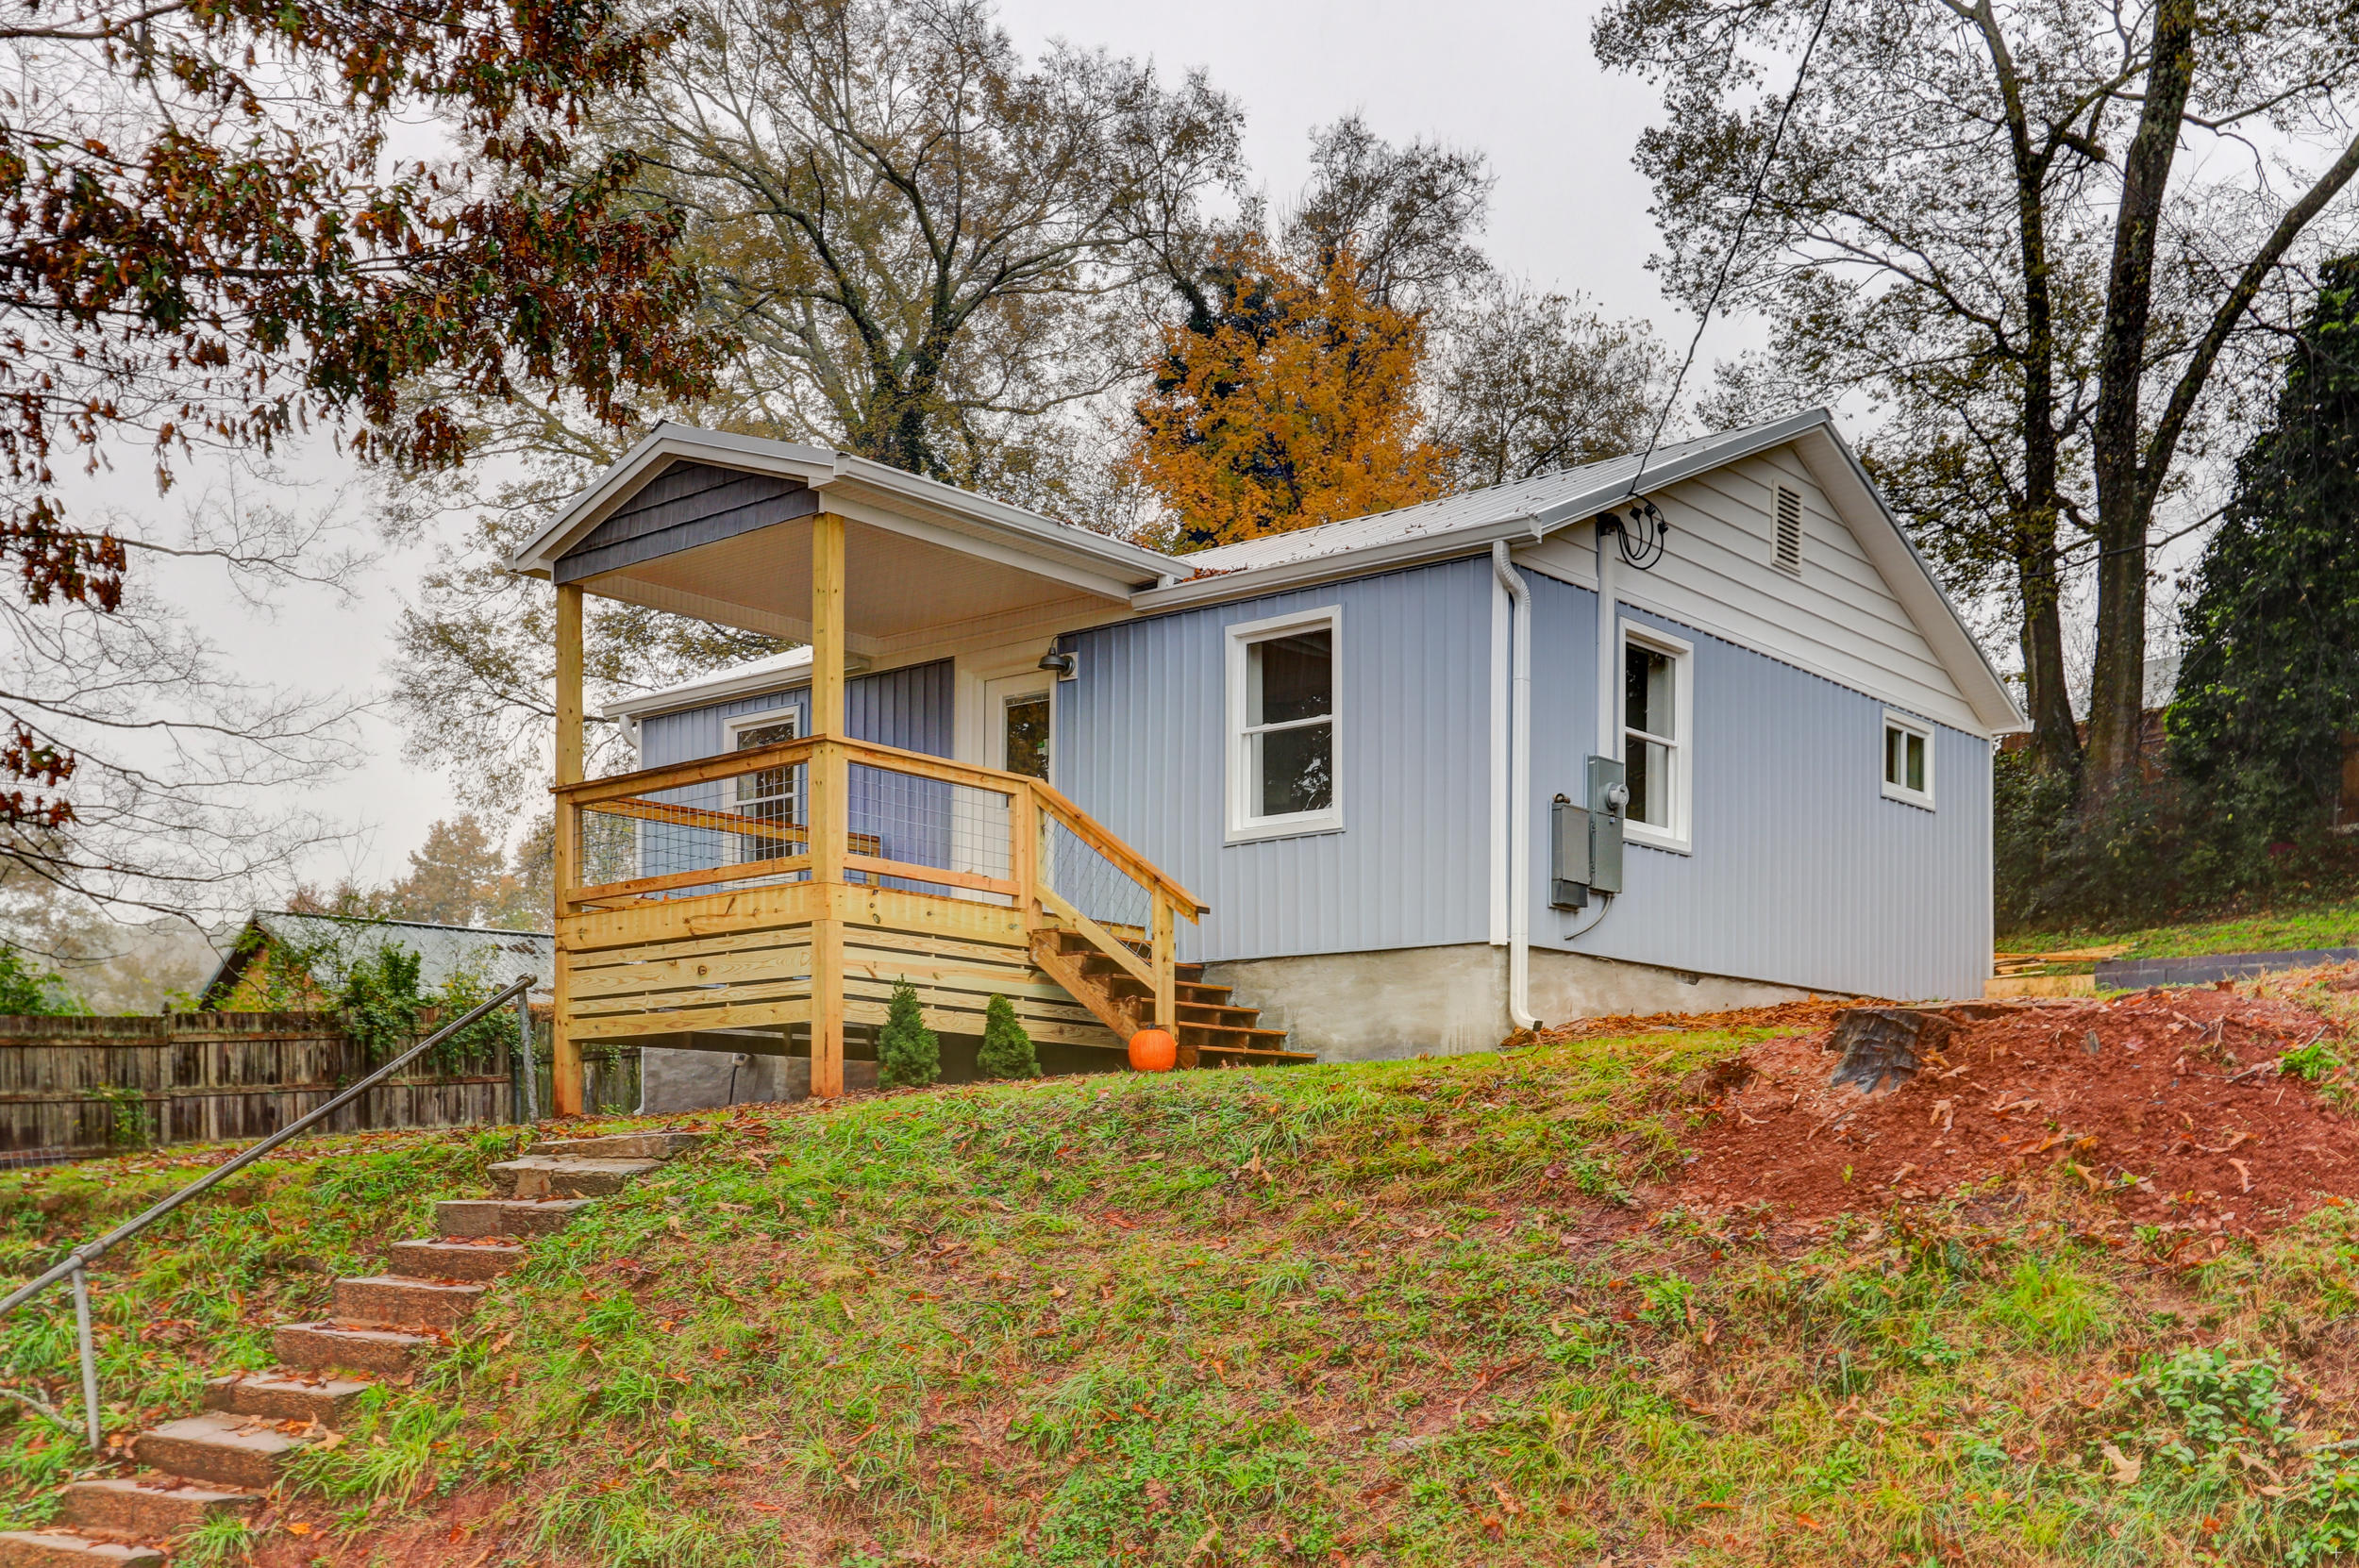 237 Maryville Pike, Knoxville, TN 37920